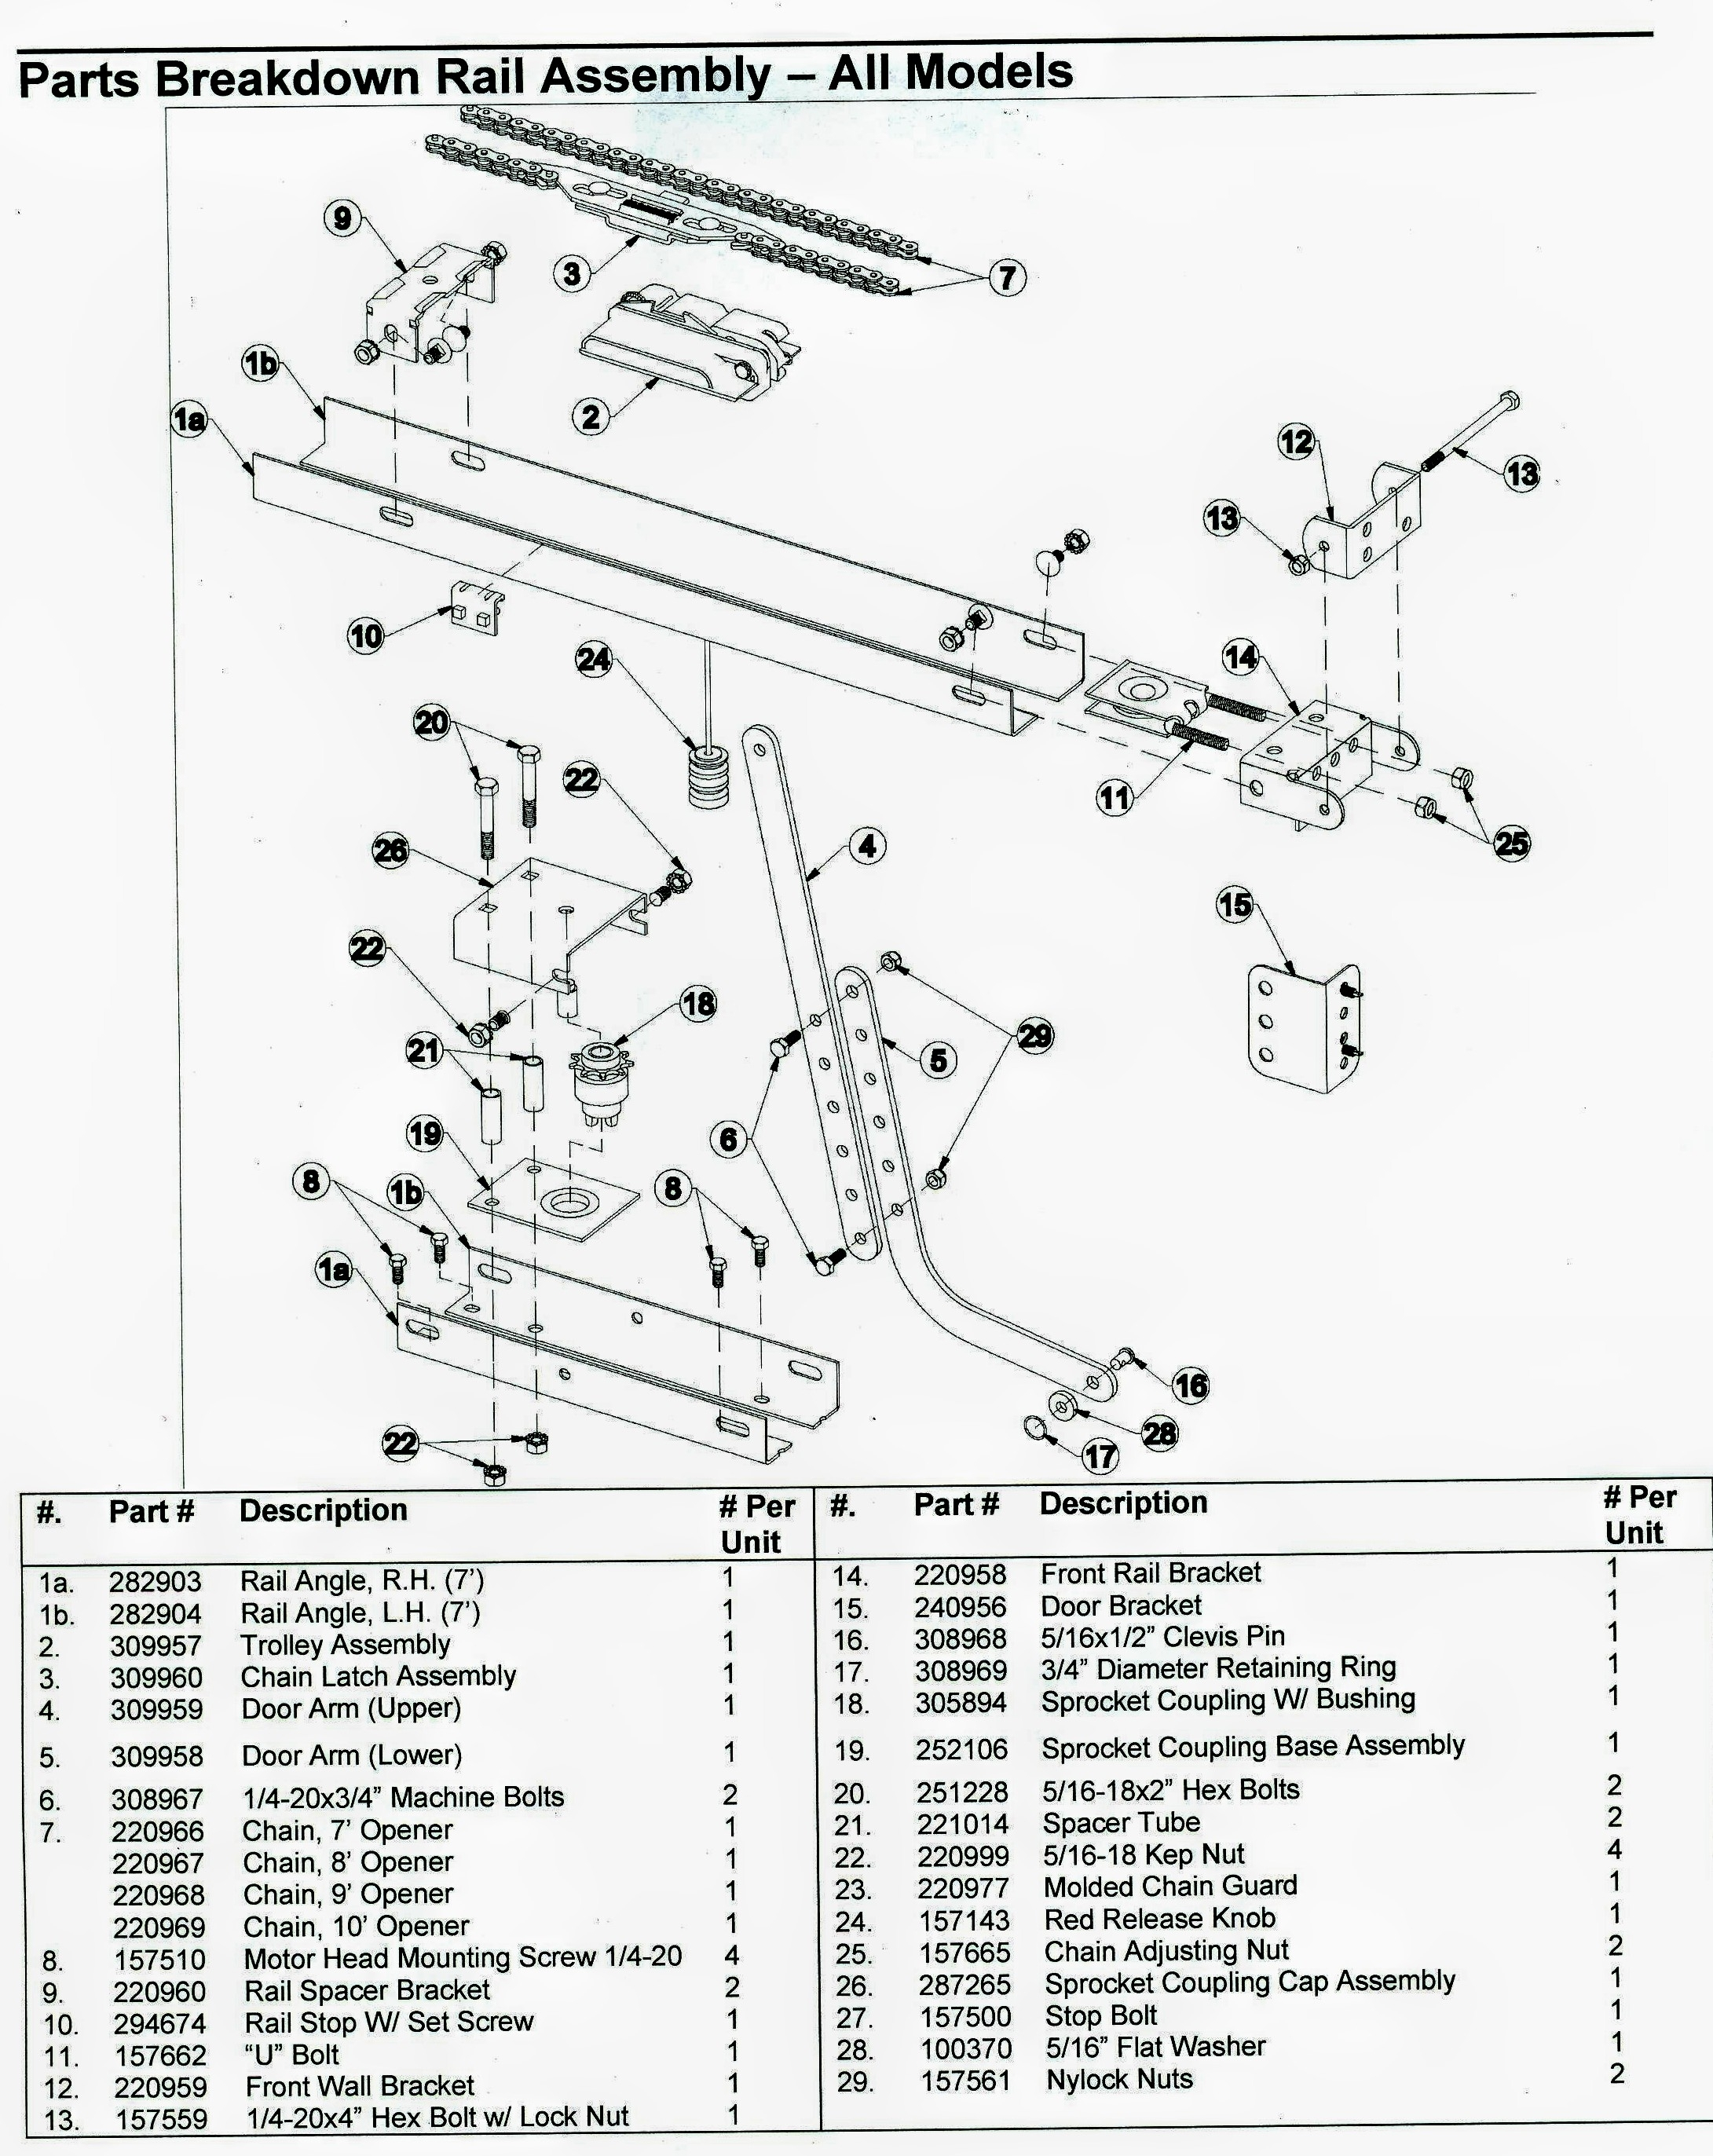 wiring diagram for garage door opener to genie garage door opener intended for genie garage door opener parts diagram wiring diagram for garage door opener to genie garage door opener Old Genie Garage Door Opener Wiring-Diagram at soozxer.org